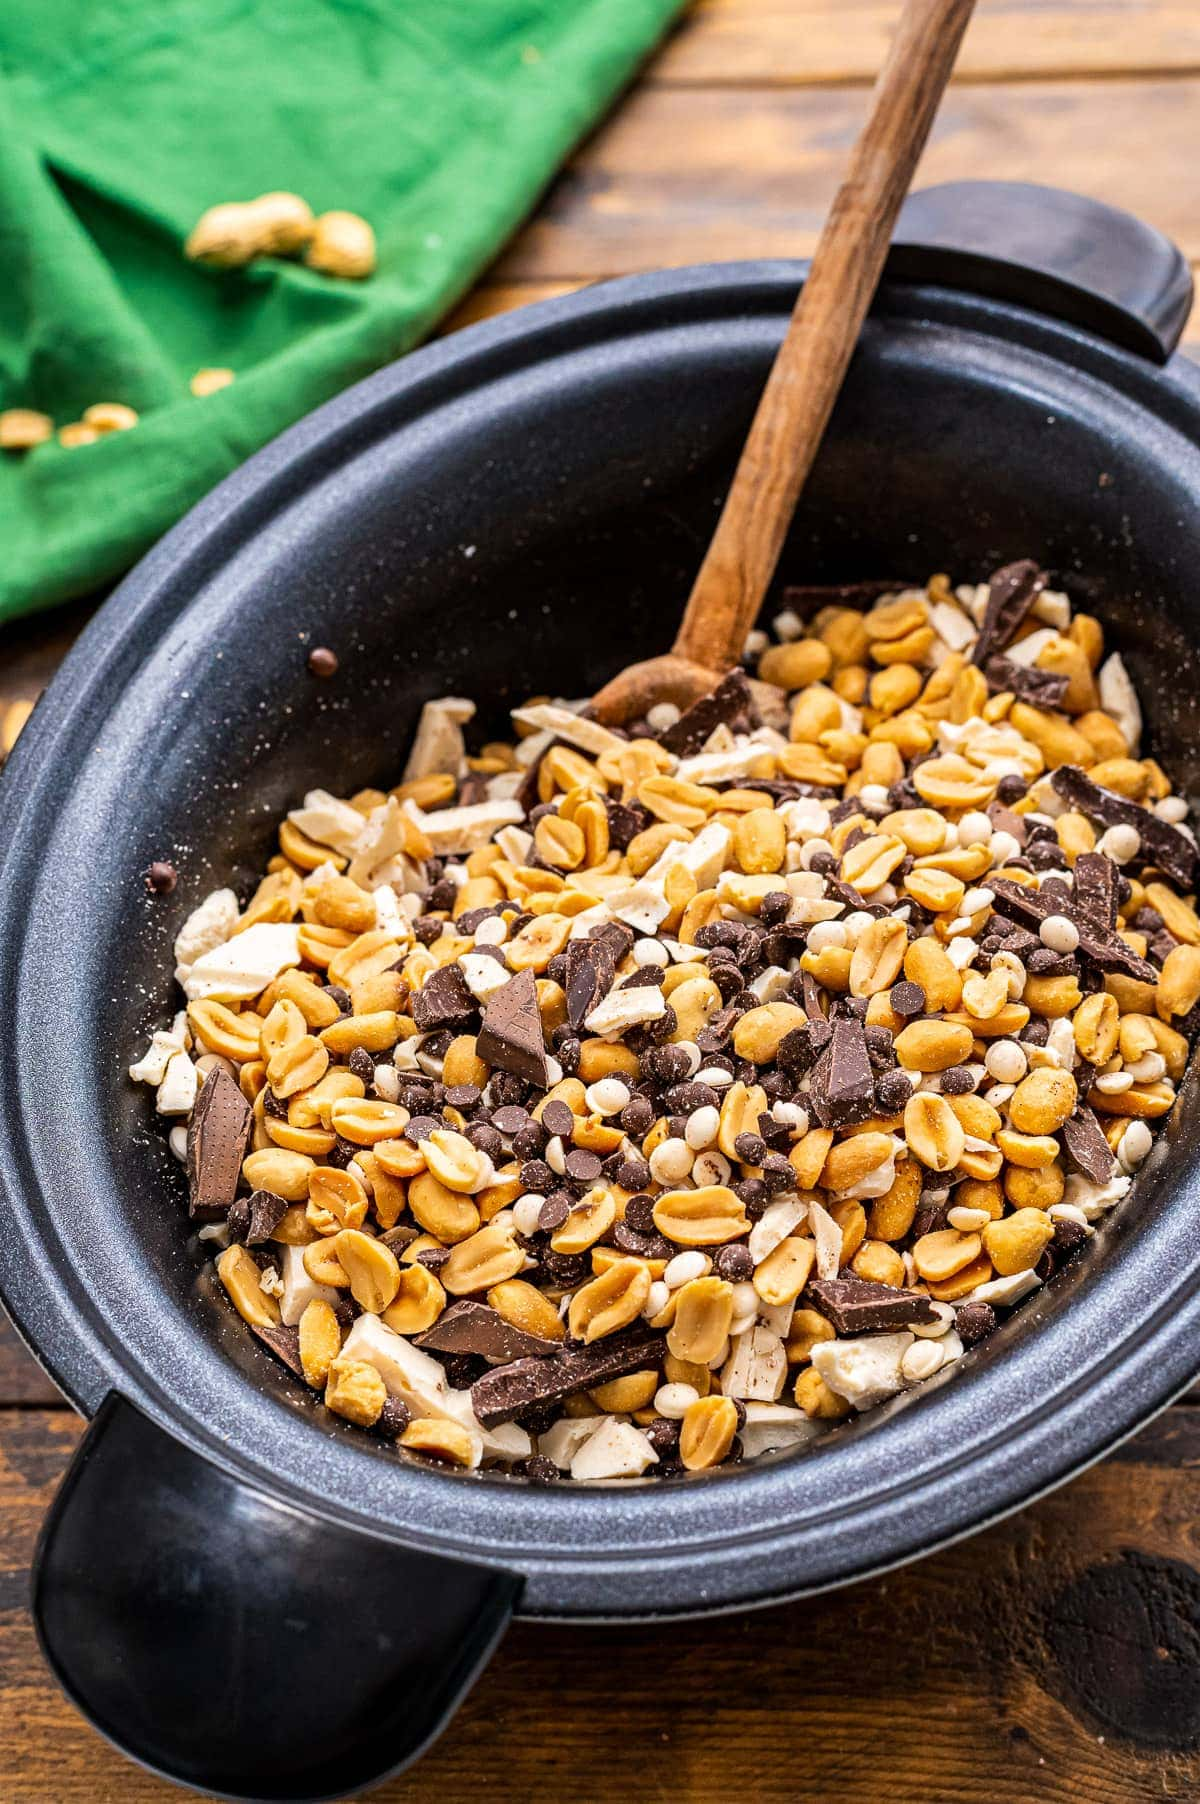 Crock Pot with ingredients for peanut clusters stirred together.